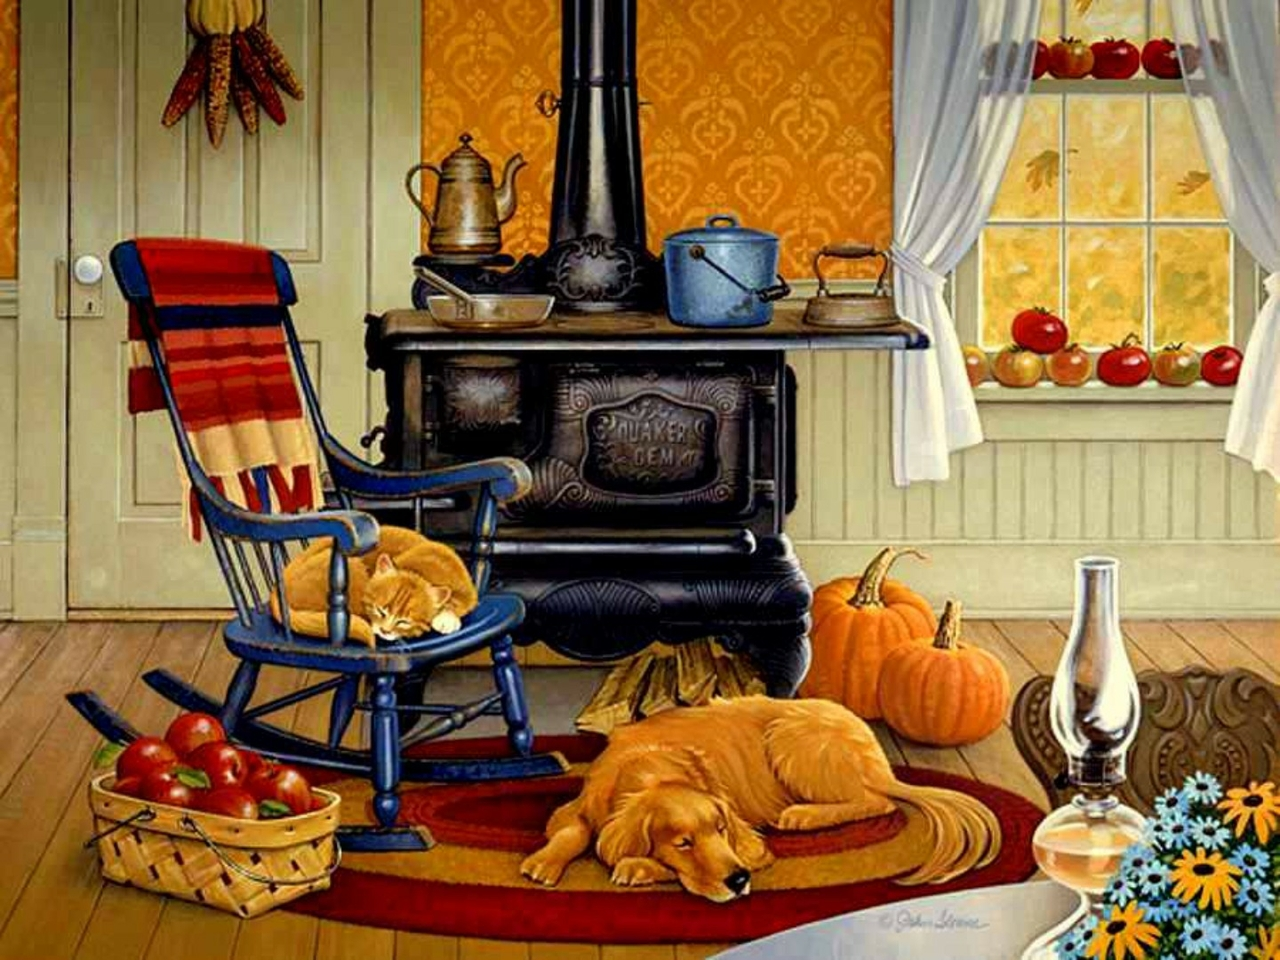 1280x960 Warm And Cozy Wallpaper Download 1280x960